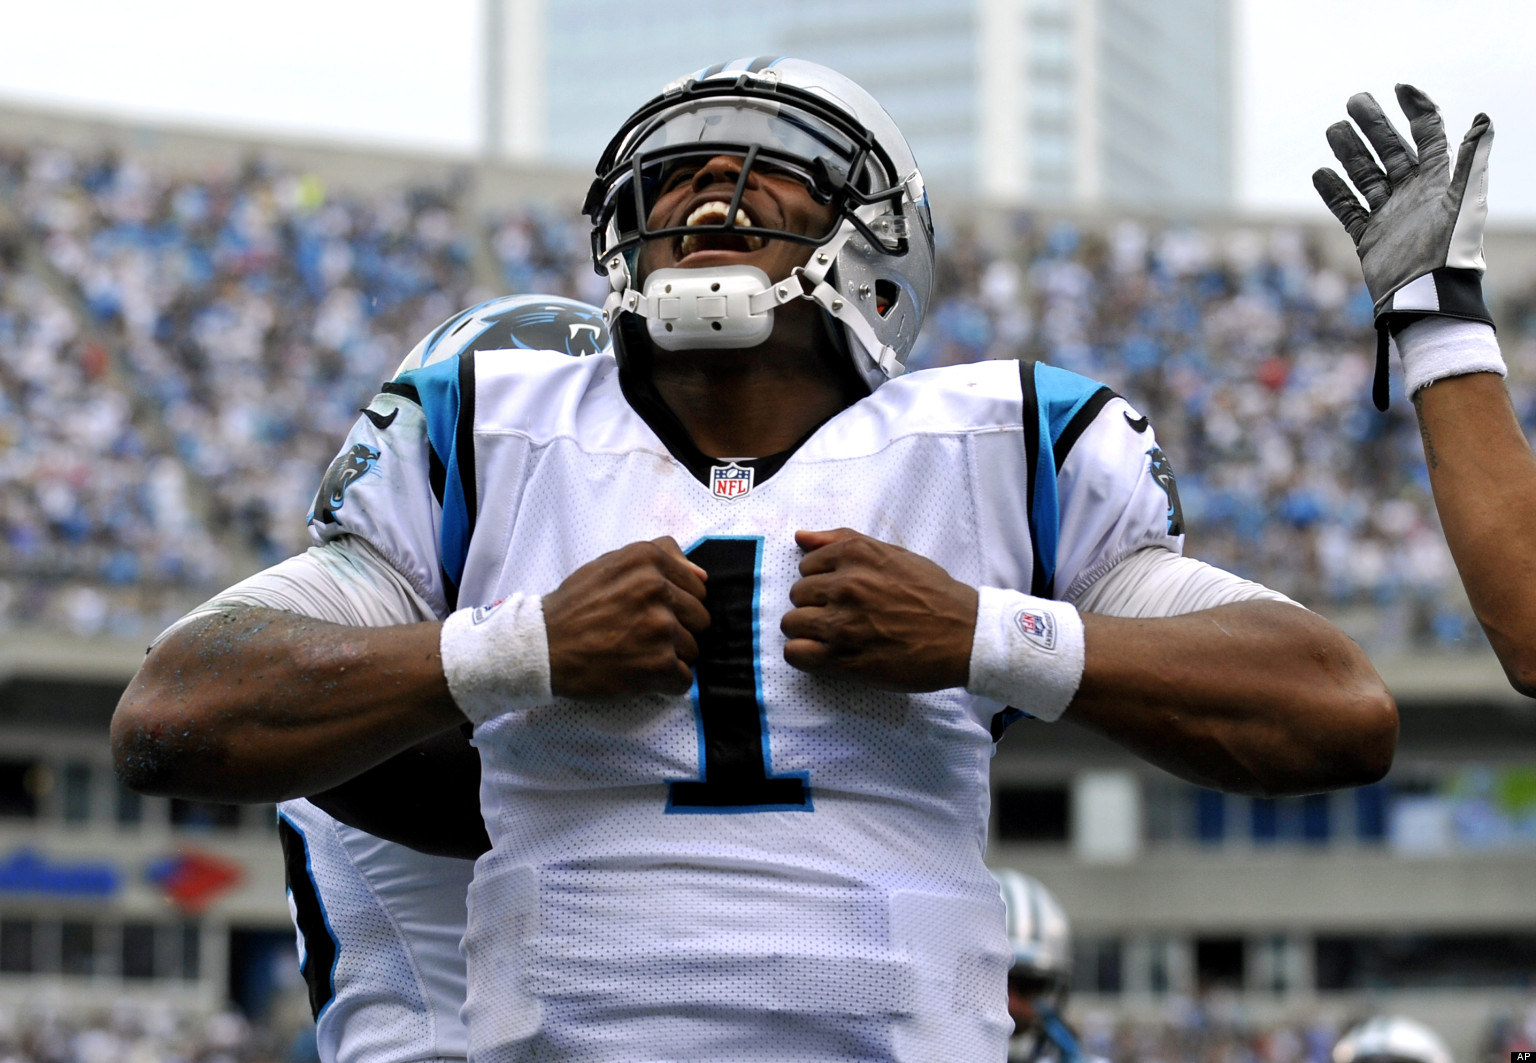 bf716e656 Carolina Panthers  Cam Newton (1) reacts after running for a touchdown  against the New Orleans Saints during the fourth quarter of an NFL football  game in ...